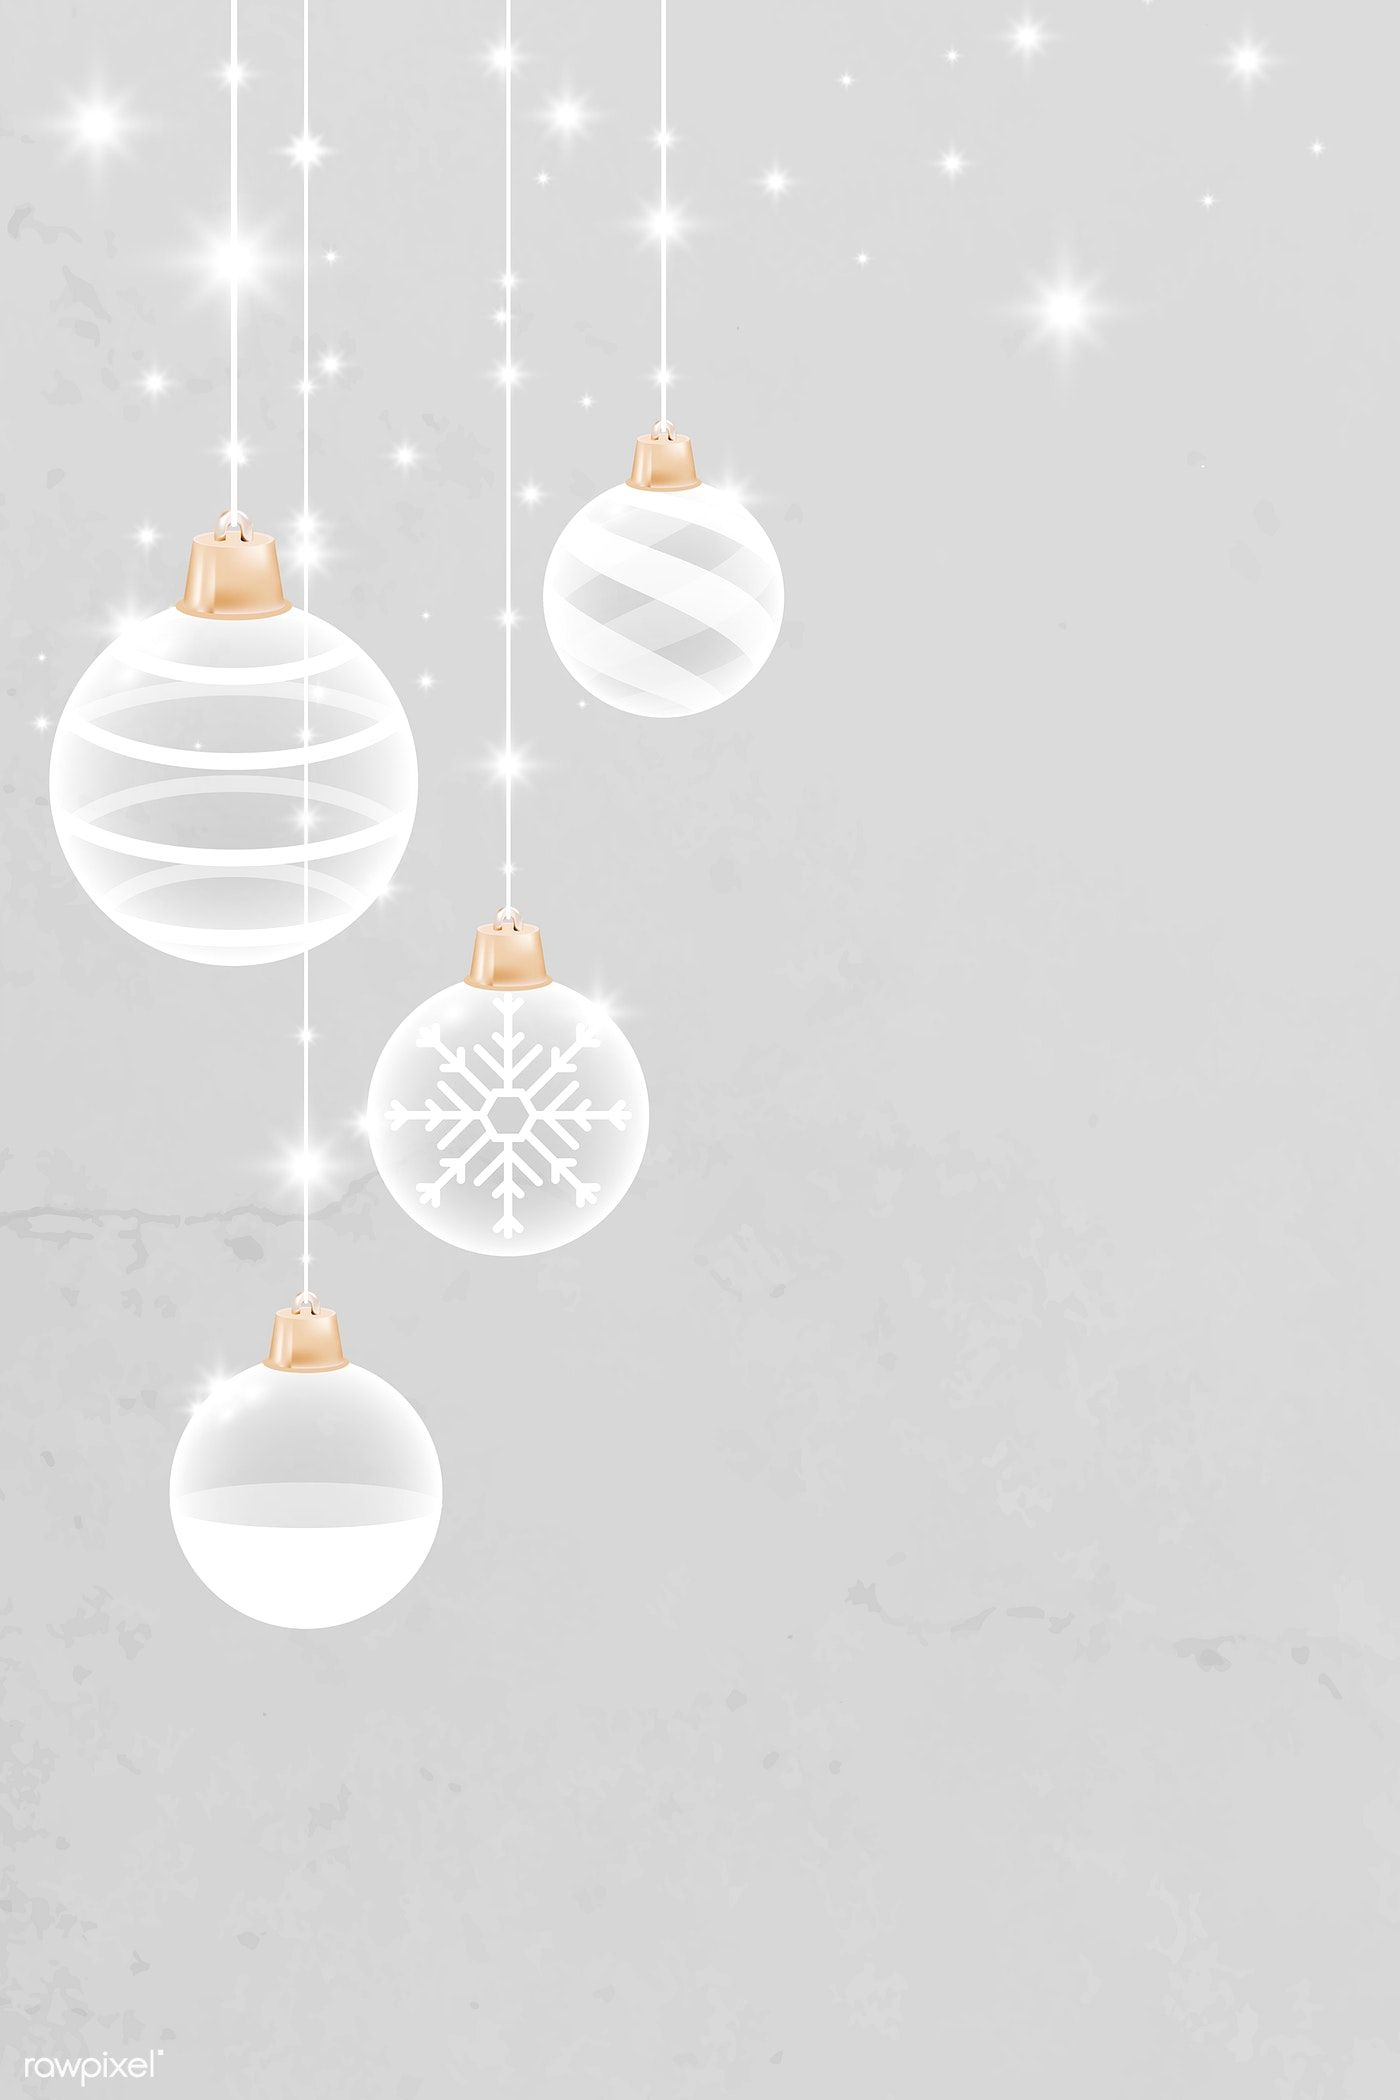 Download Premium Vector Of White Christmas Bauble Patterned On Gray Christmas Baubles Christmas Background Christmas Wallpaper